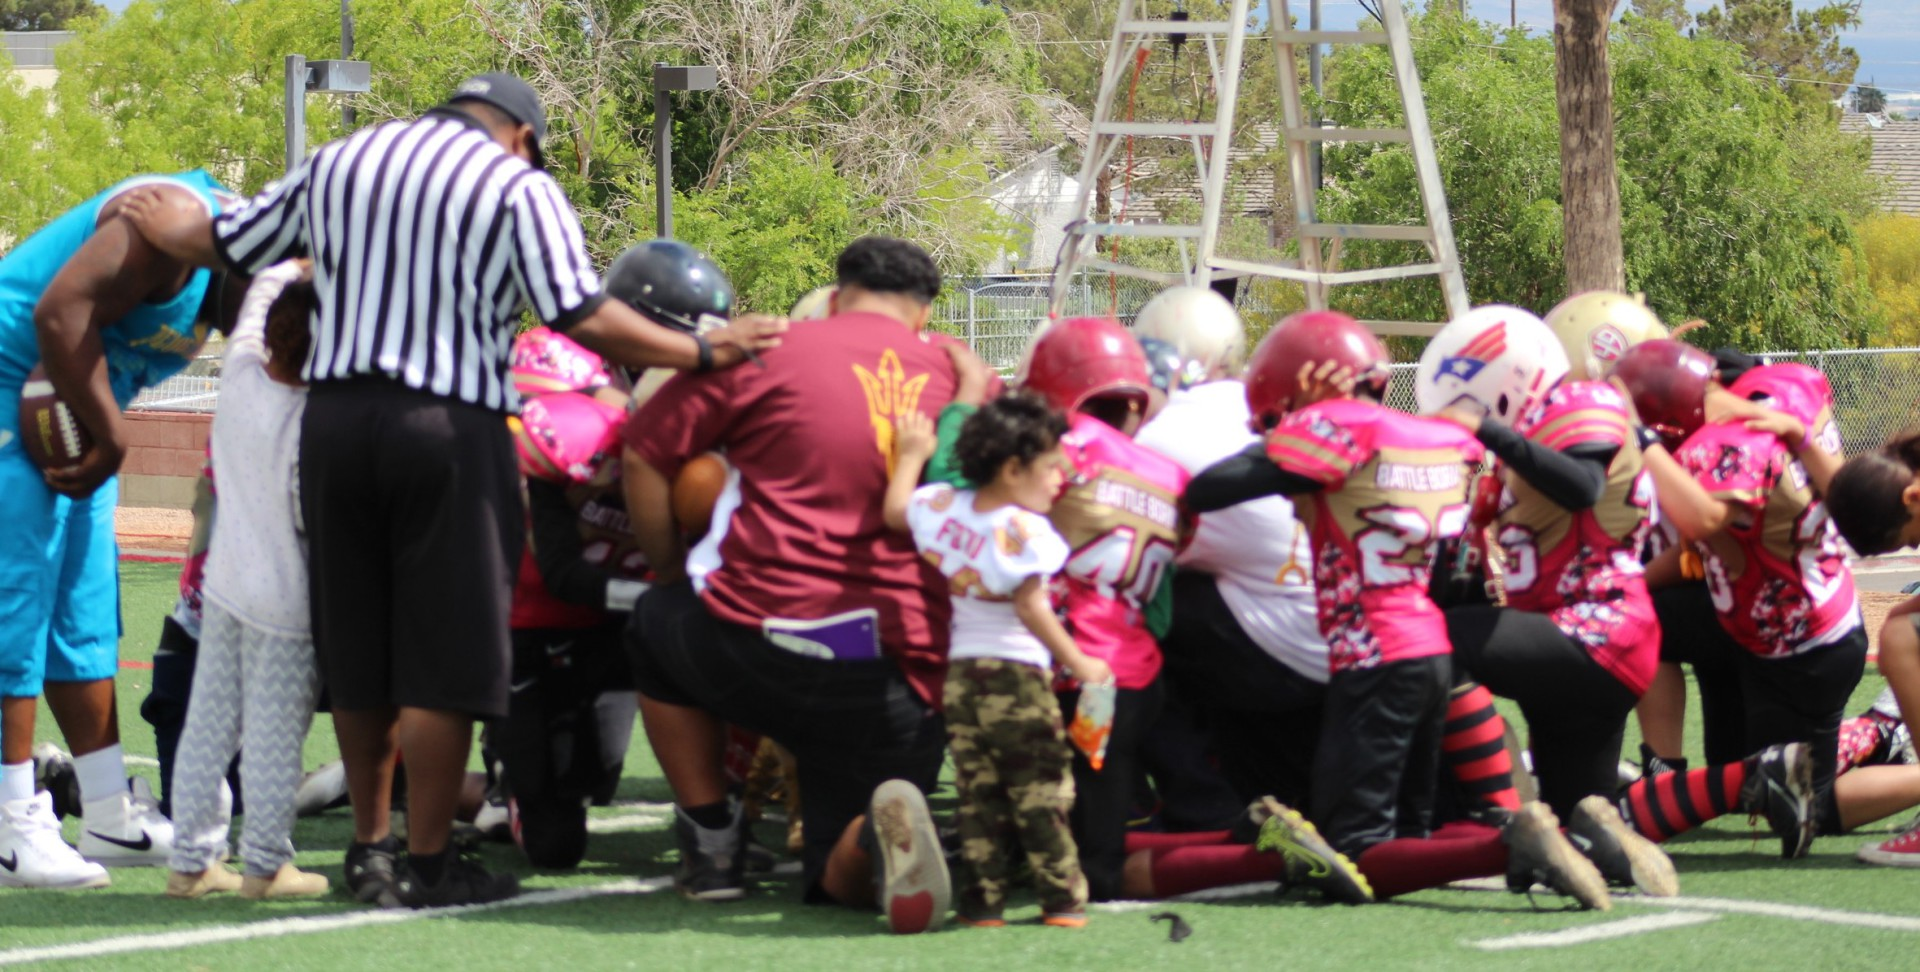 A team thats prays together stays together